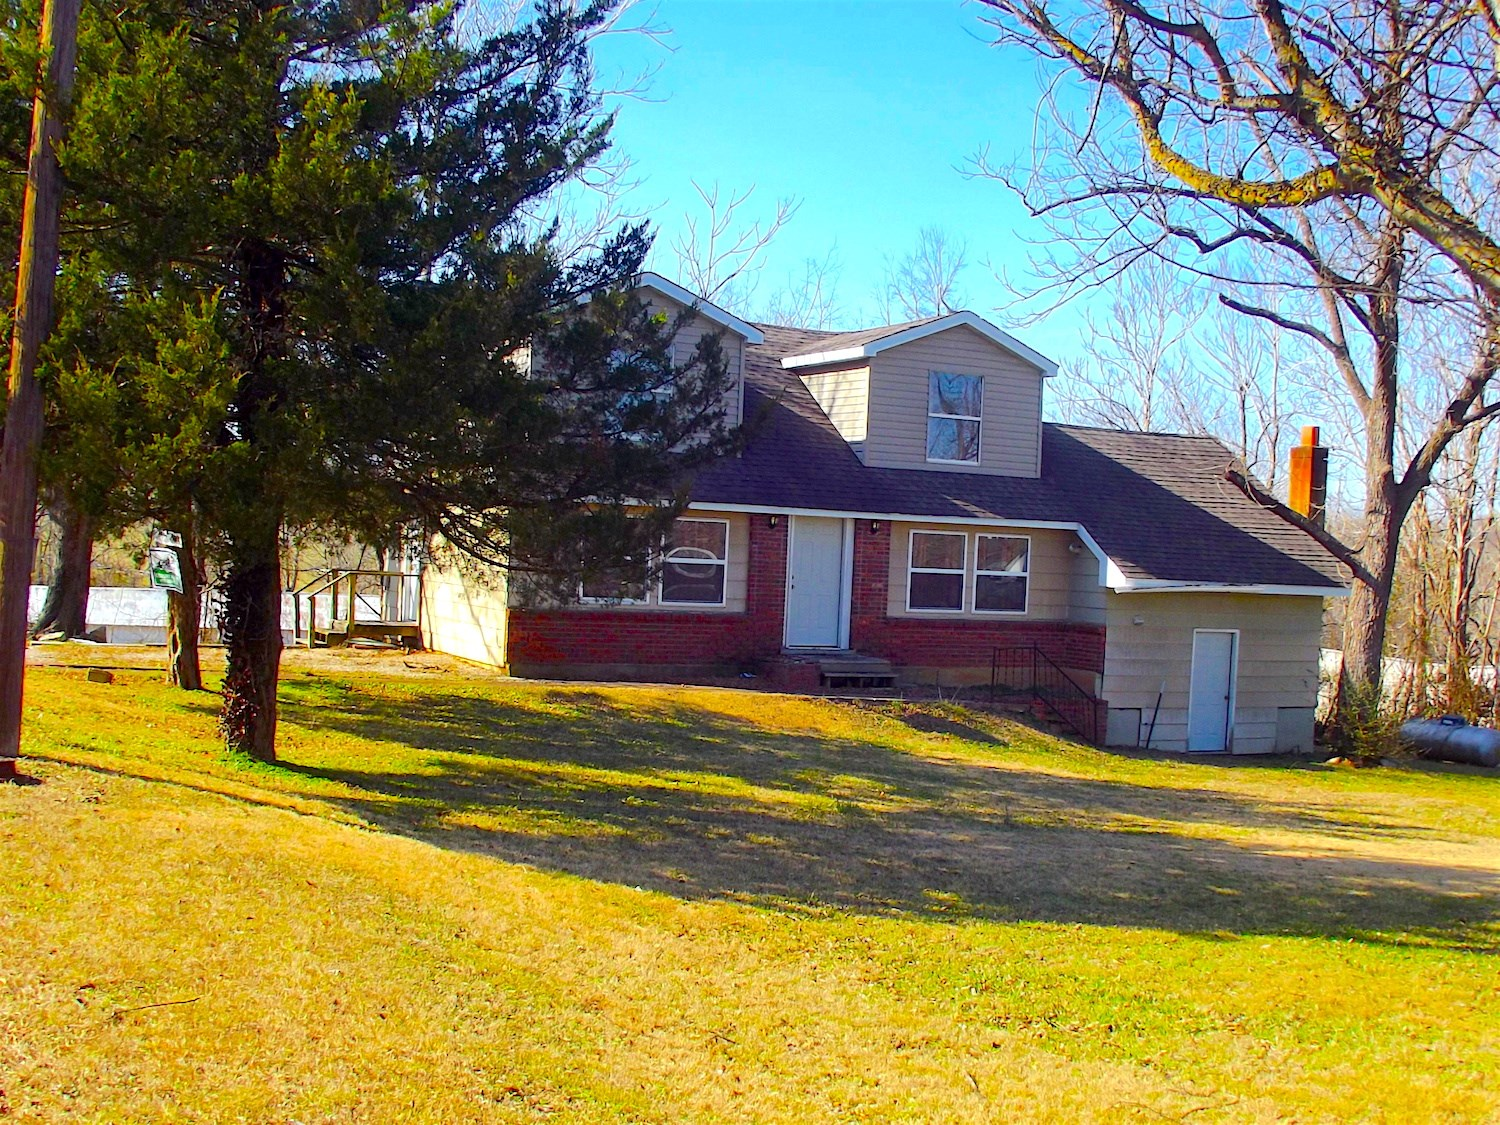 Home For Sale in Thayer School District, Missouri